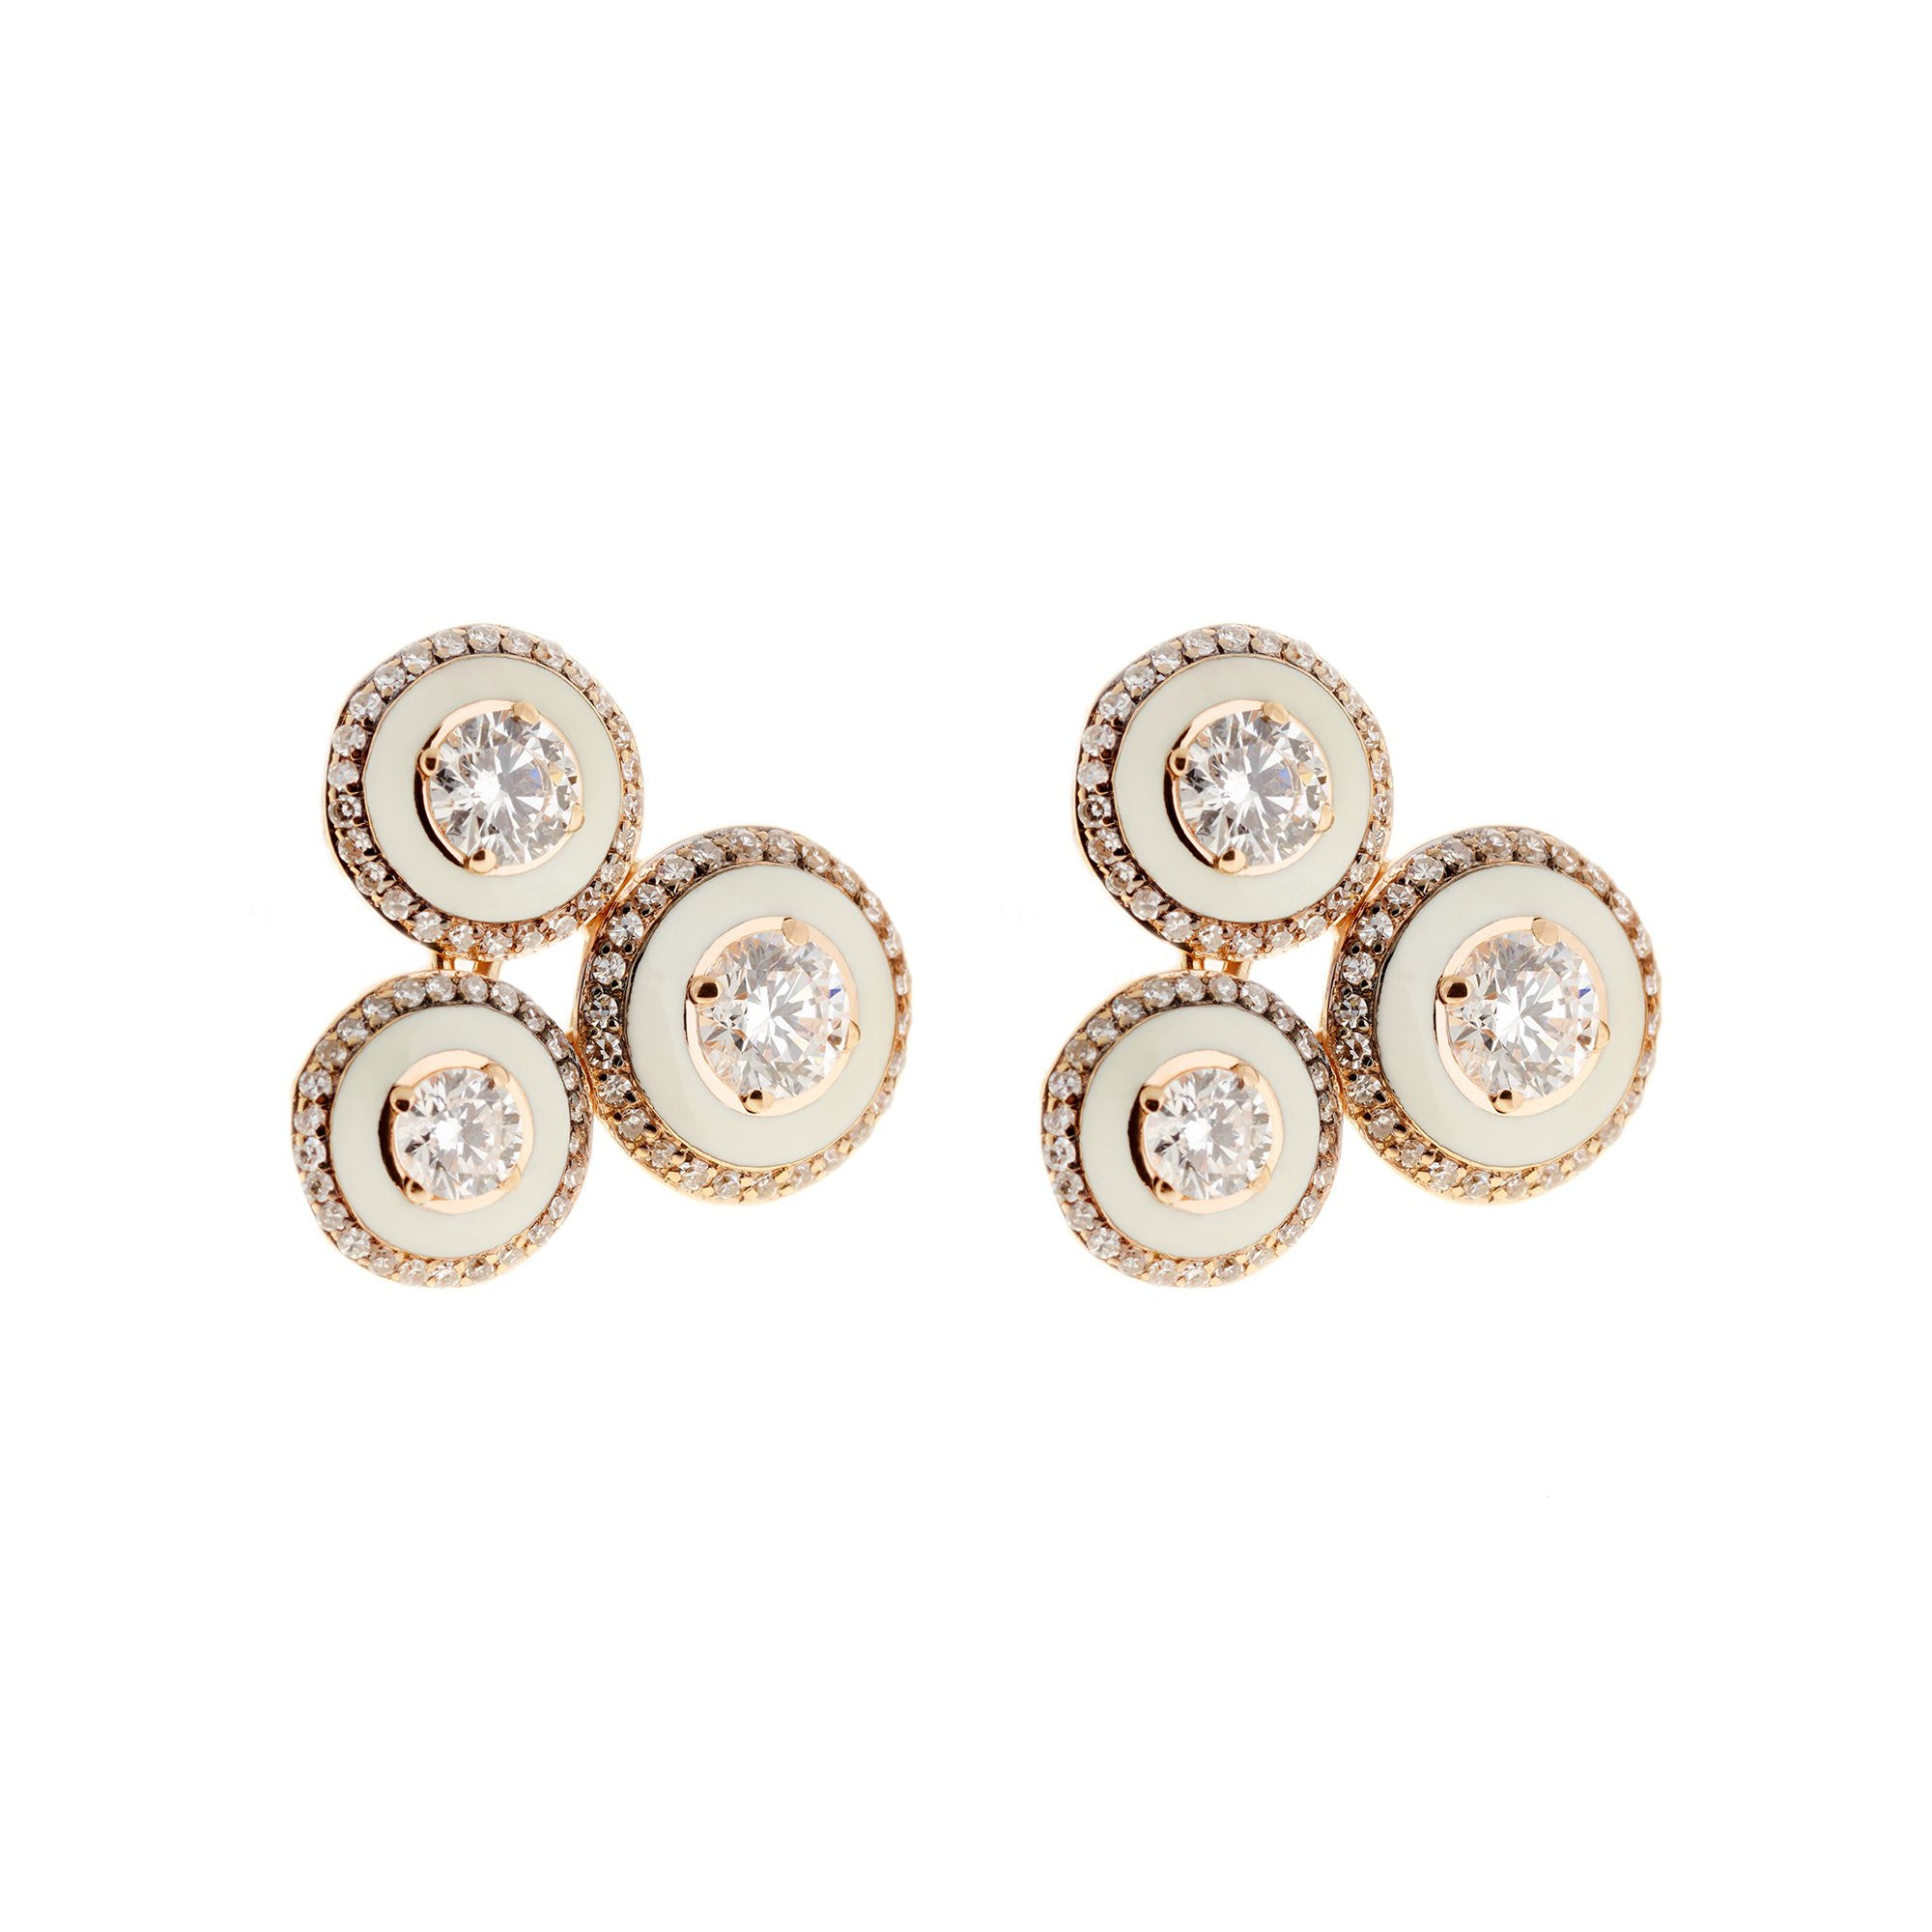 Diamond and Ivory Enamel Studs by Selim Mouzannar for Broken English Jewelry